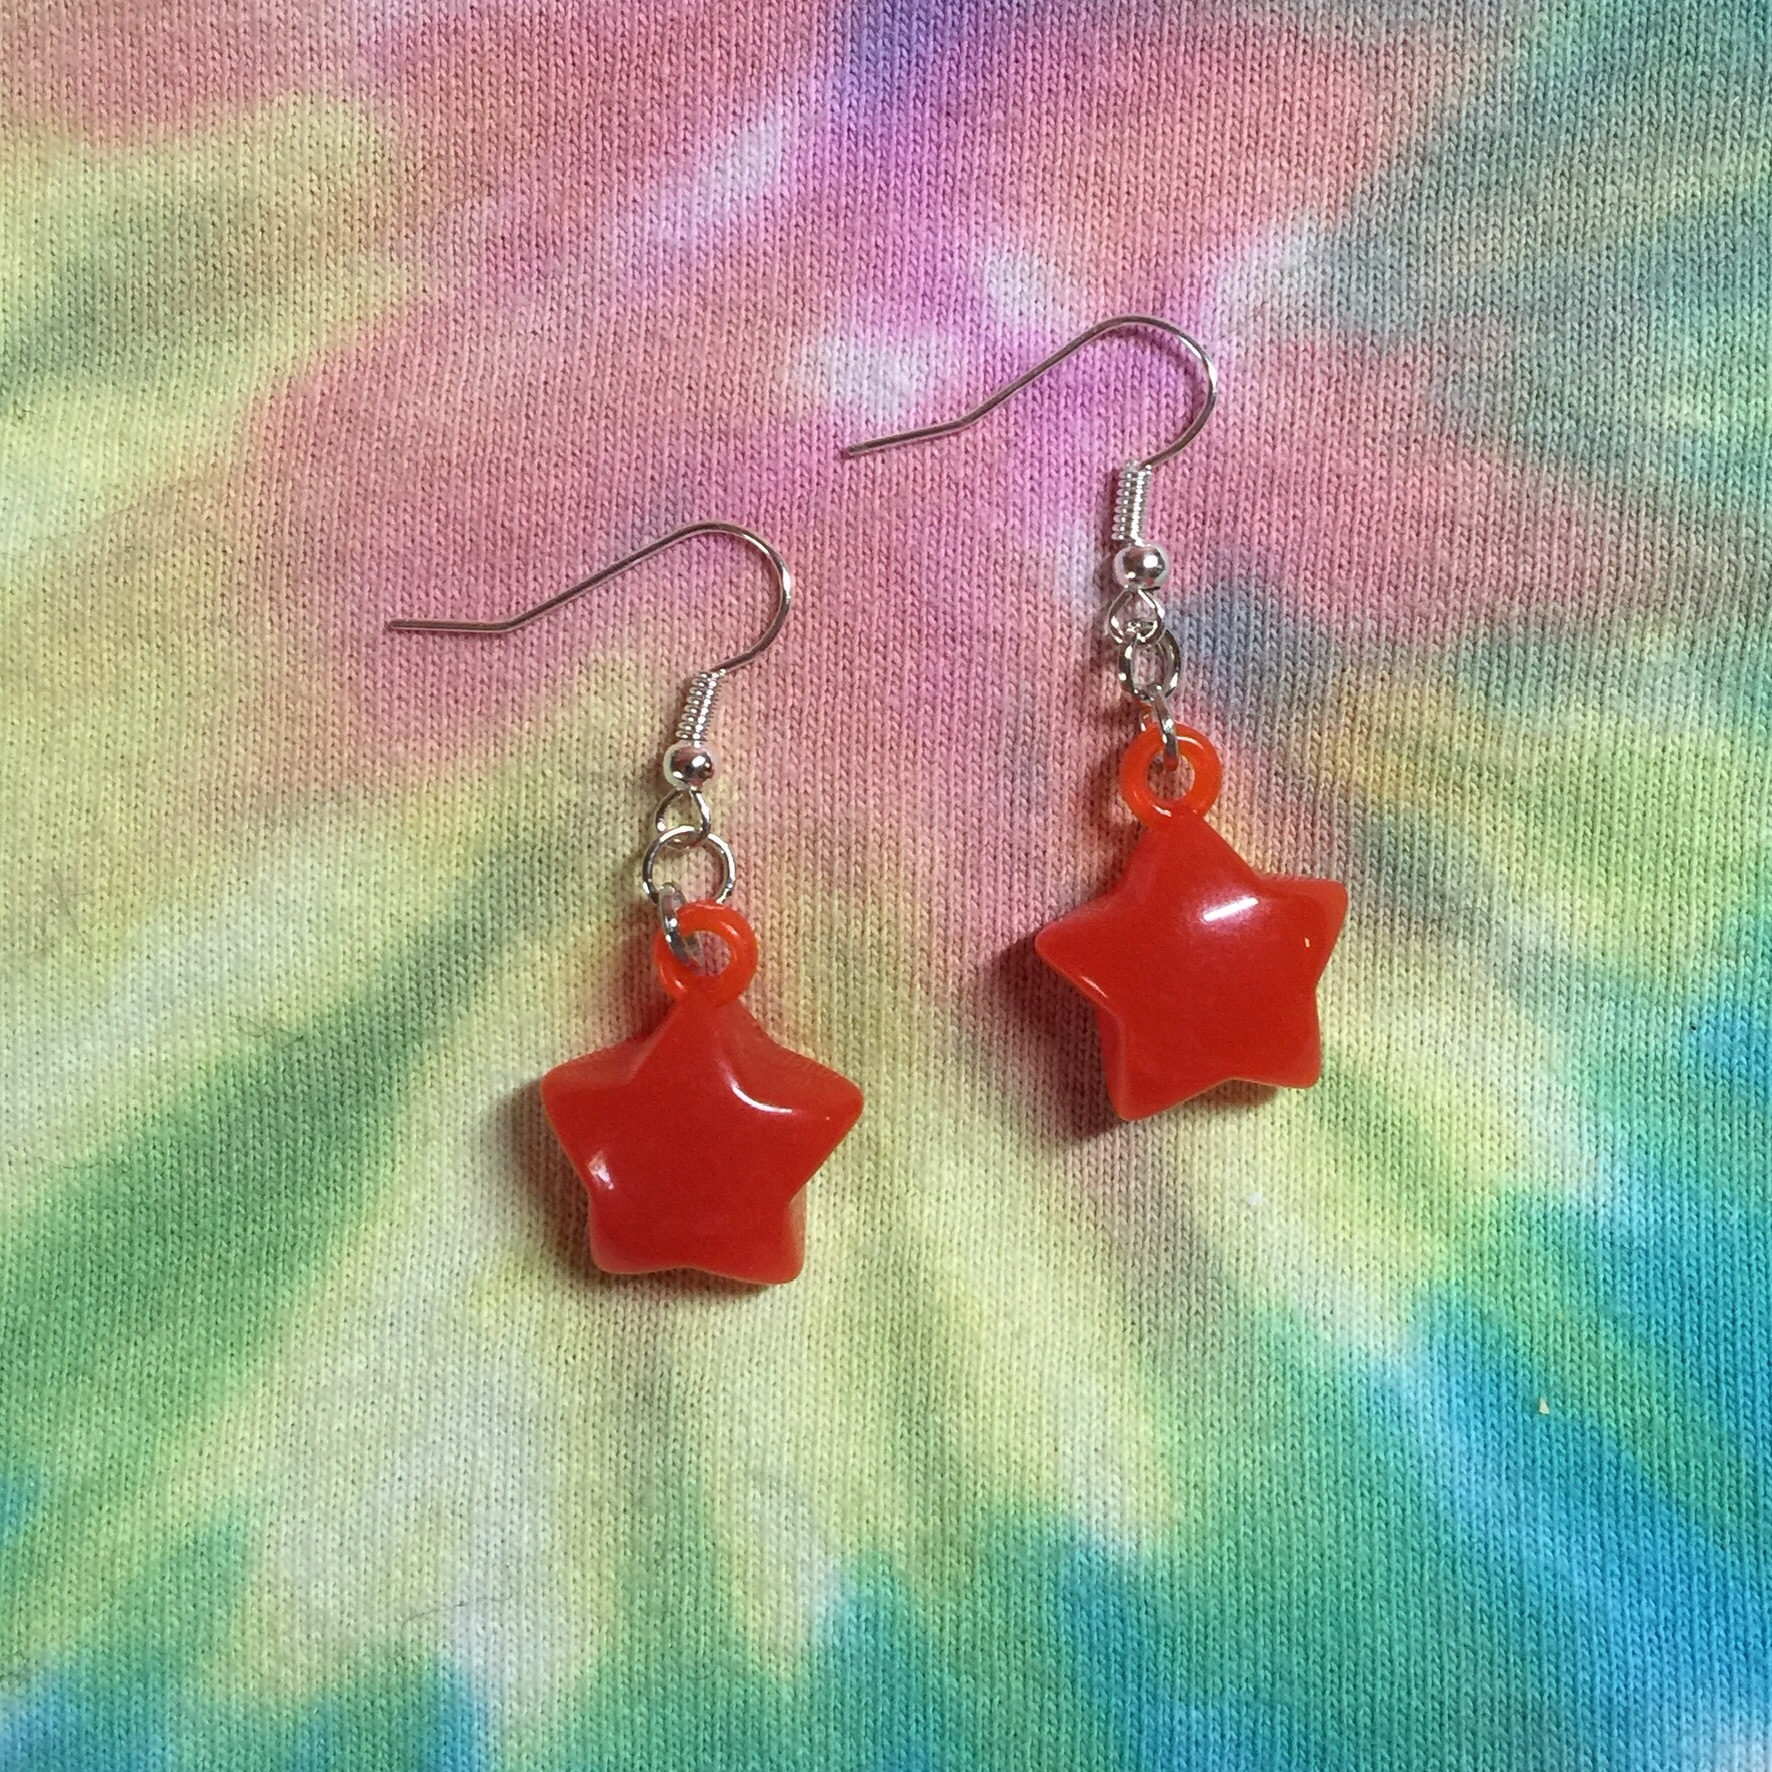 red candy star earrings TAGS: #cute #girly #kitsch    - Depop